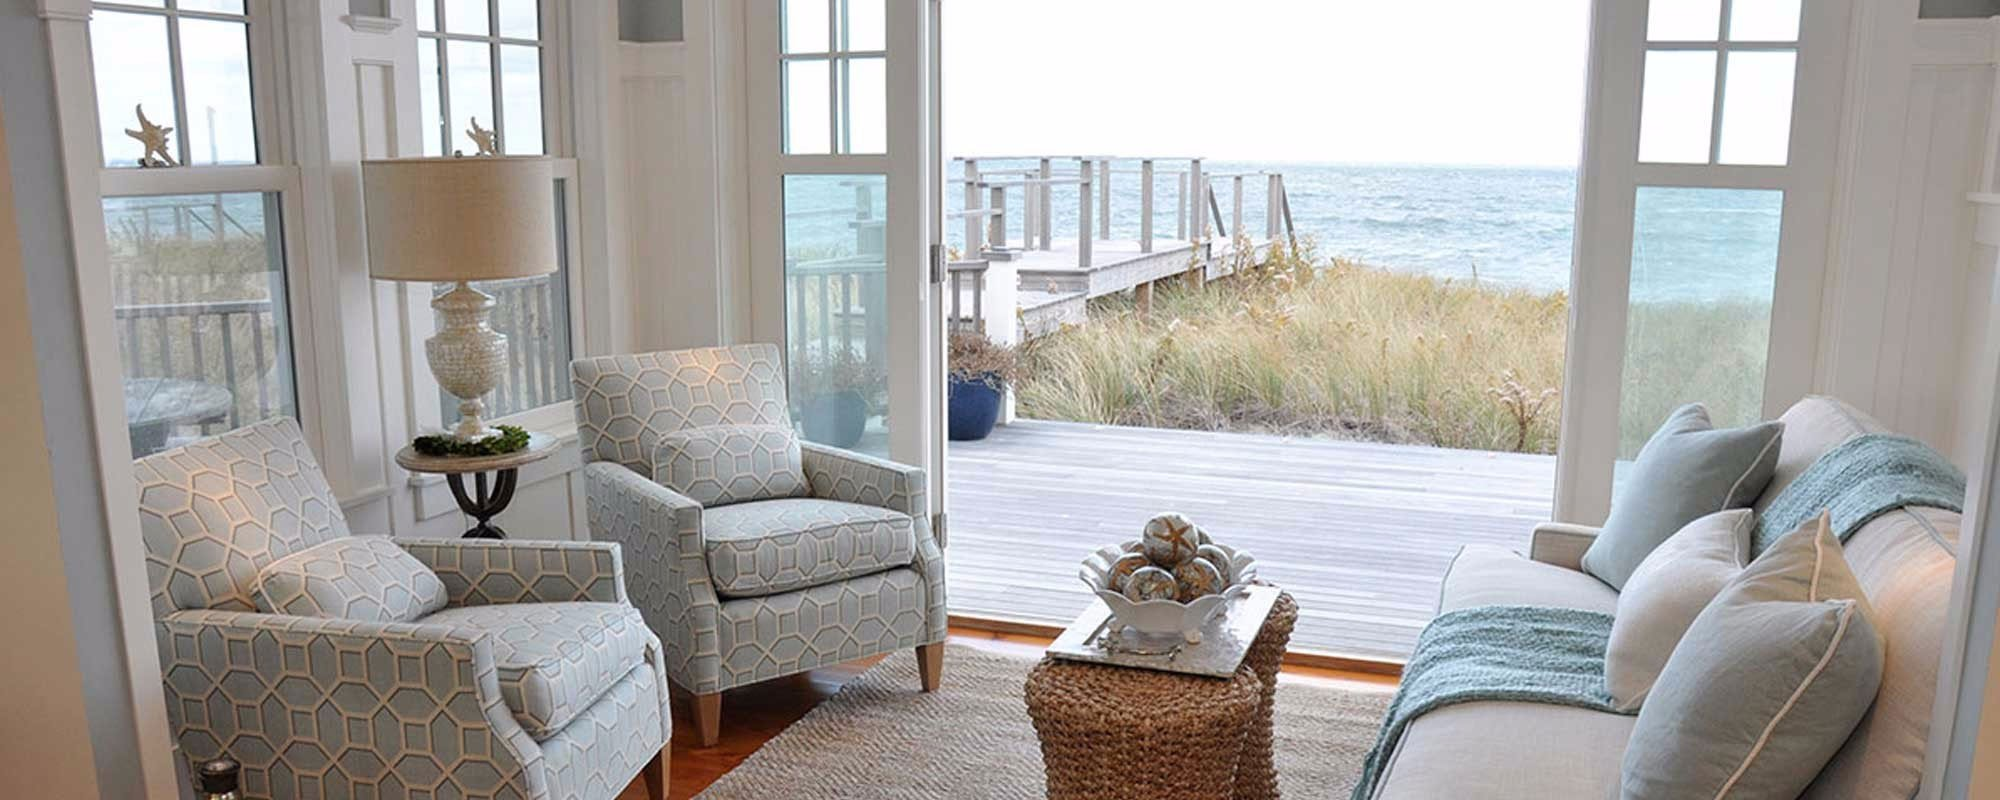 Jayne pelosi interior design cape cod ma - Cape cod house interior ...